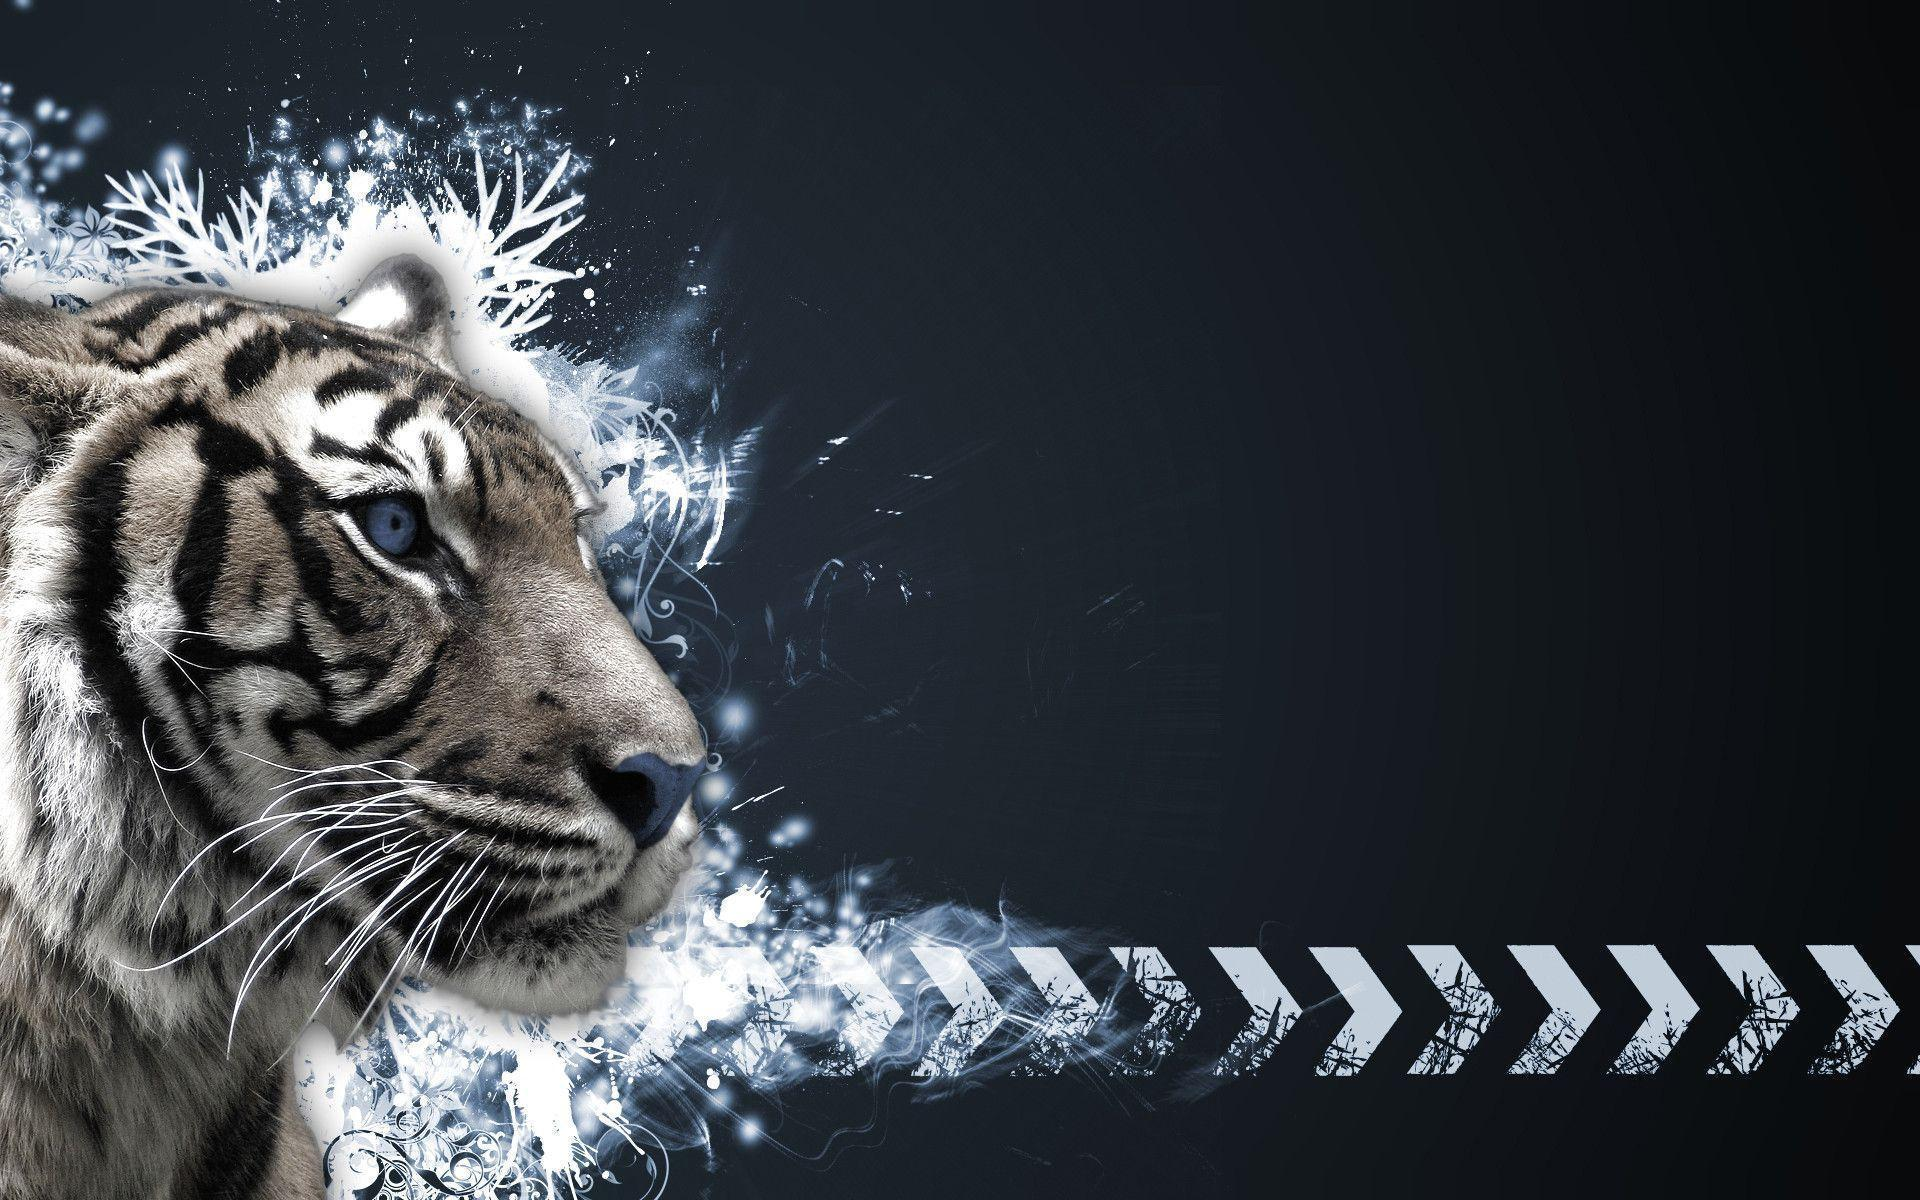 wallpaper hd white tiger - photo #28